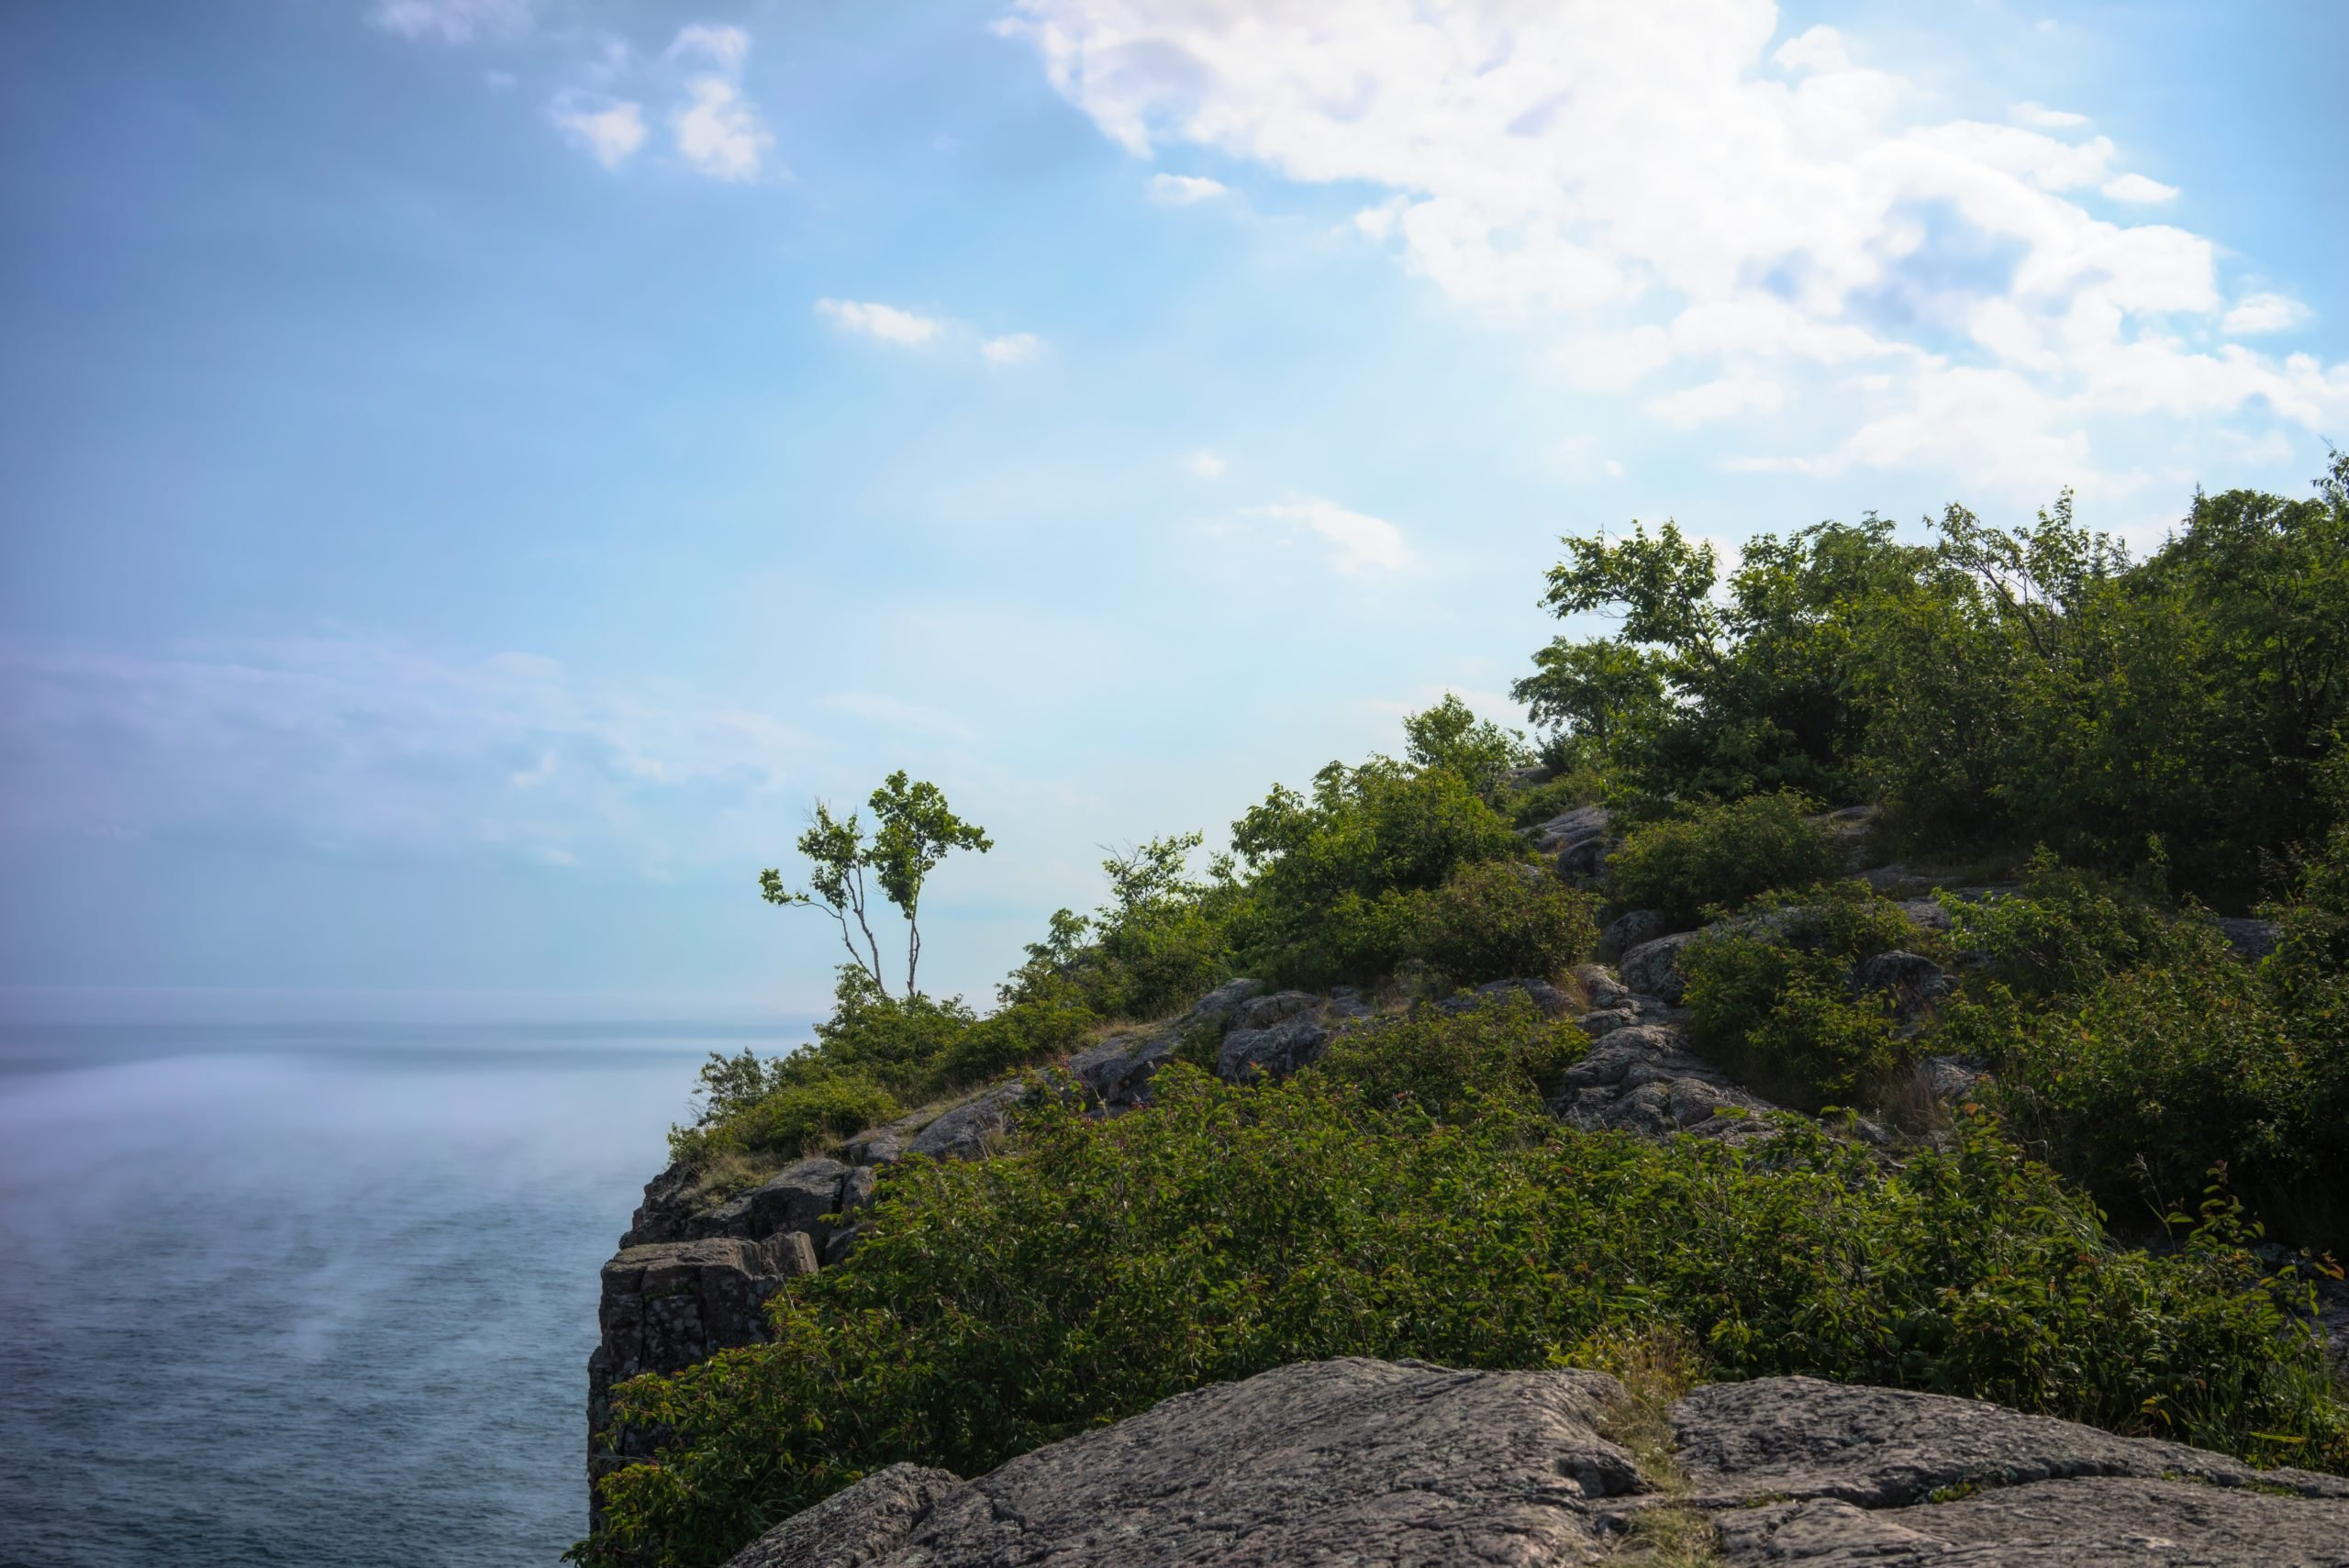 Scenic view of the Lake Superior shoreline and cliff